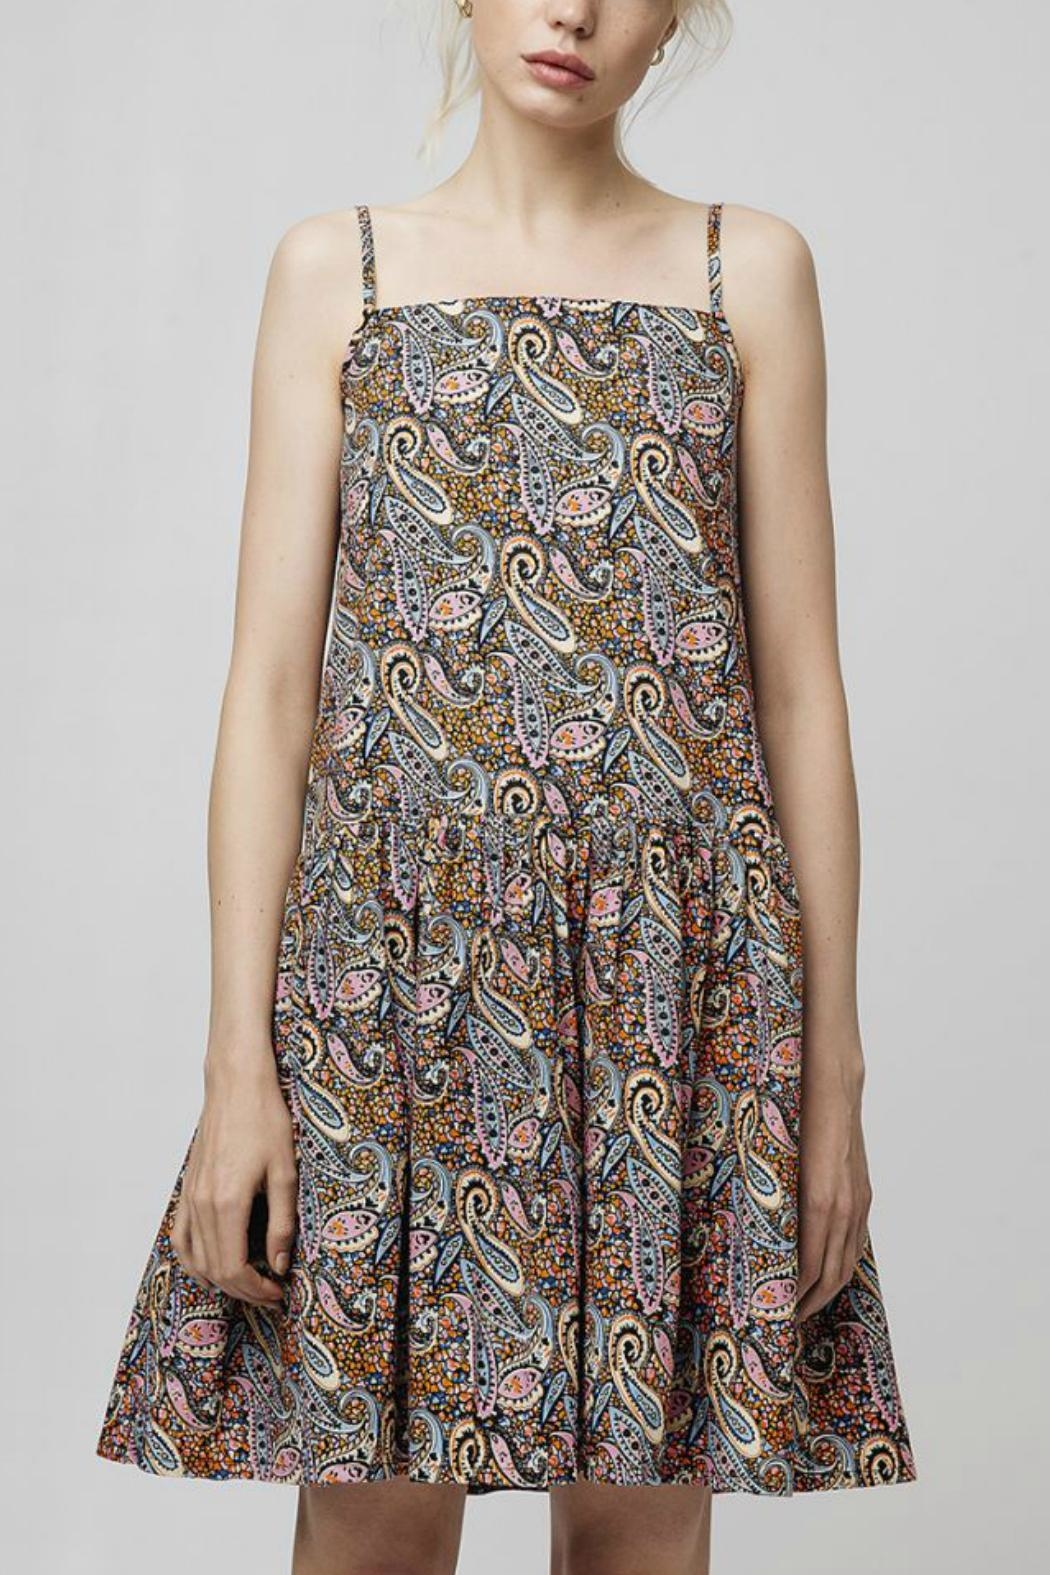 Compania Fantastica Paisley Summer Dress - Front Cropped Image